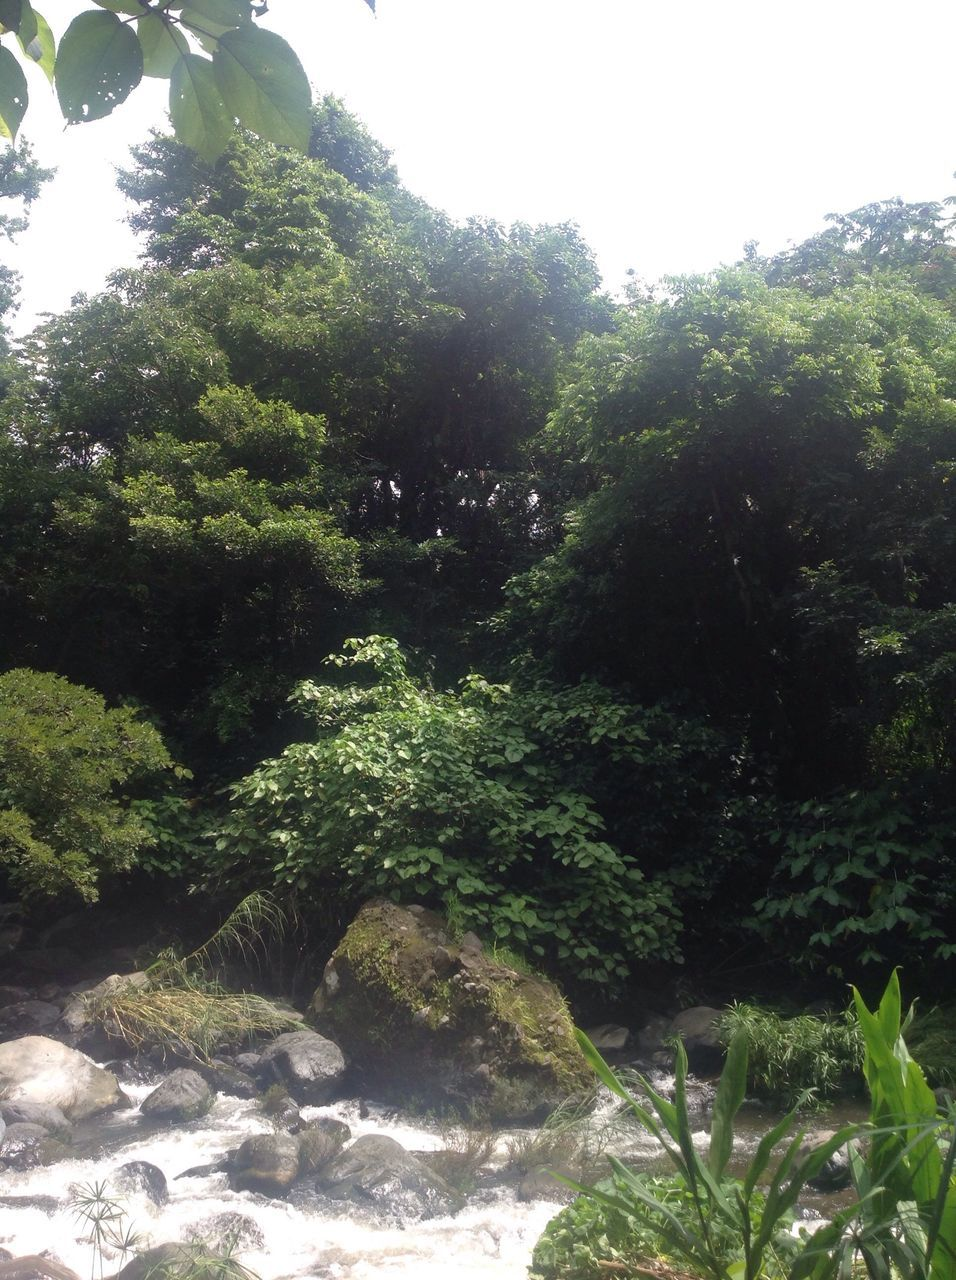 tree, nature, growth, lush, forest, no people, beauty in nature, tranquility, plant, water, outdoors, scenics, day, waterfall